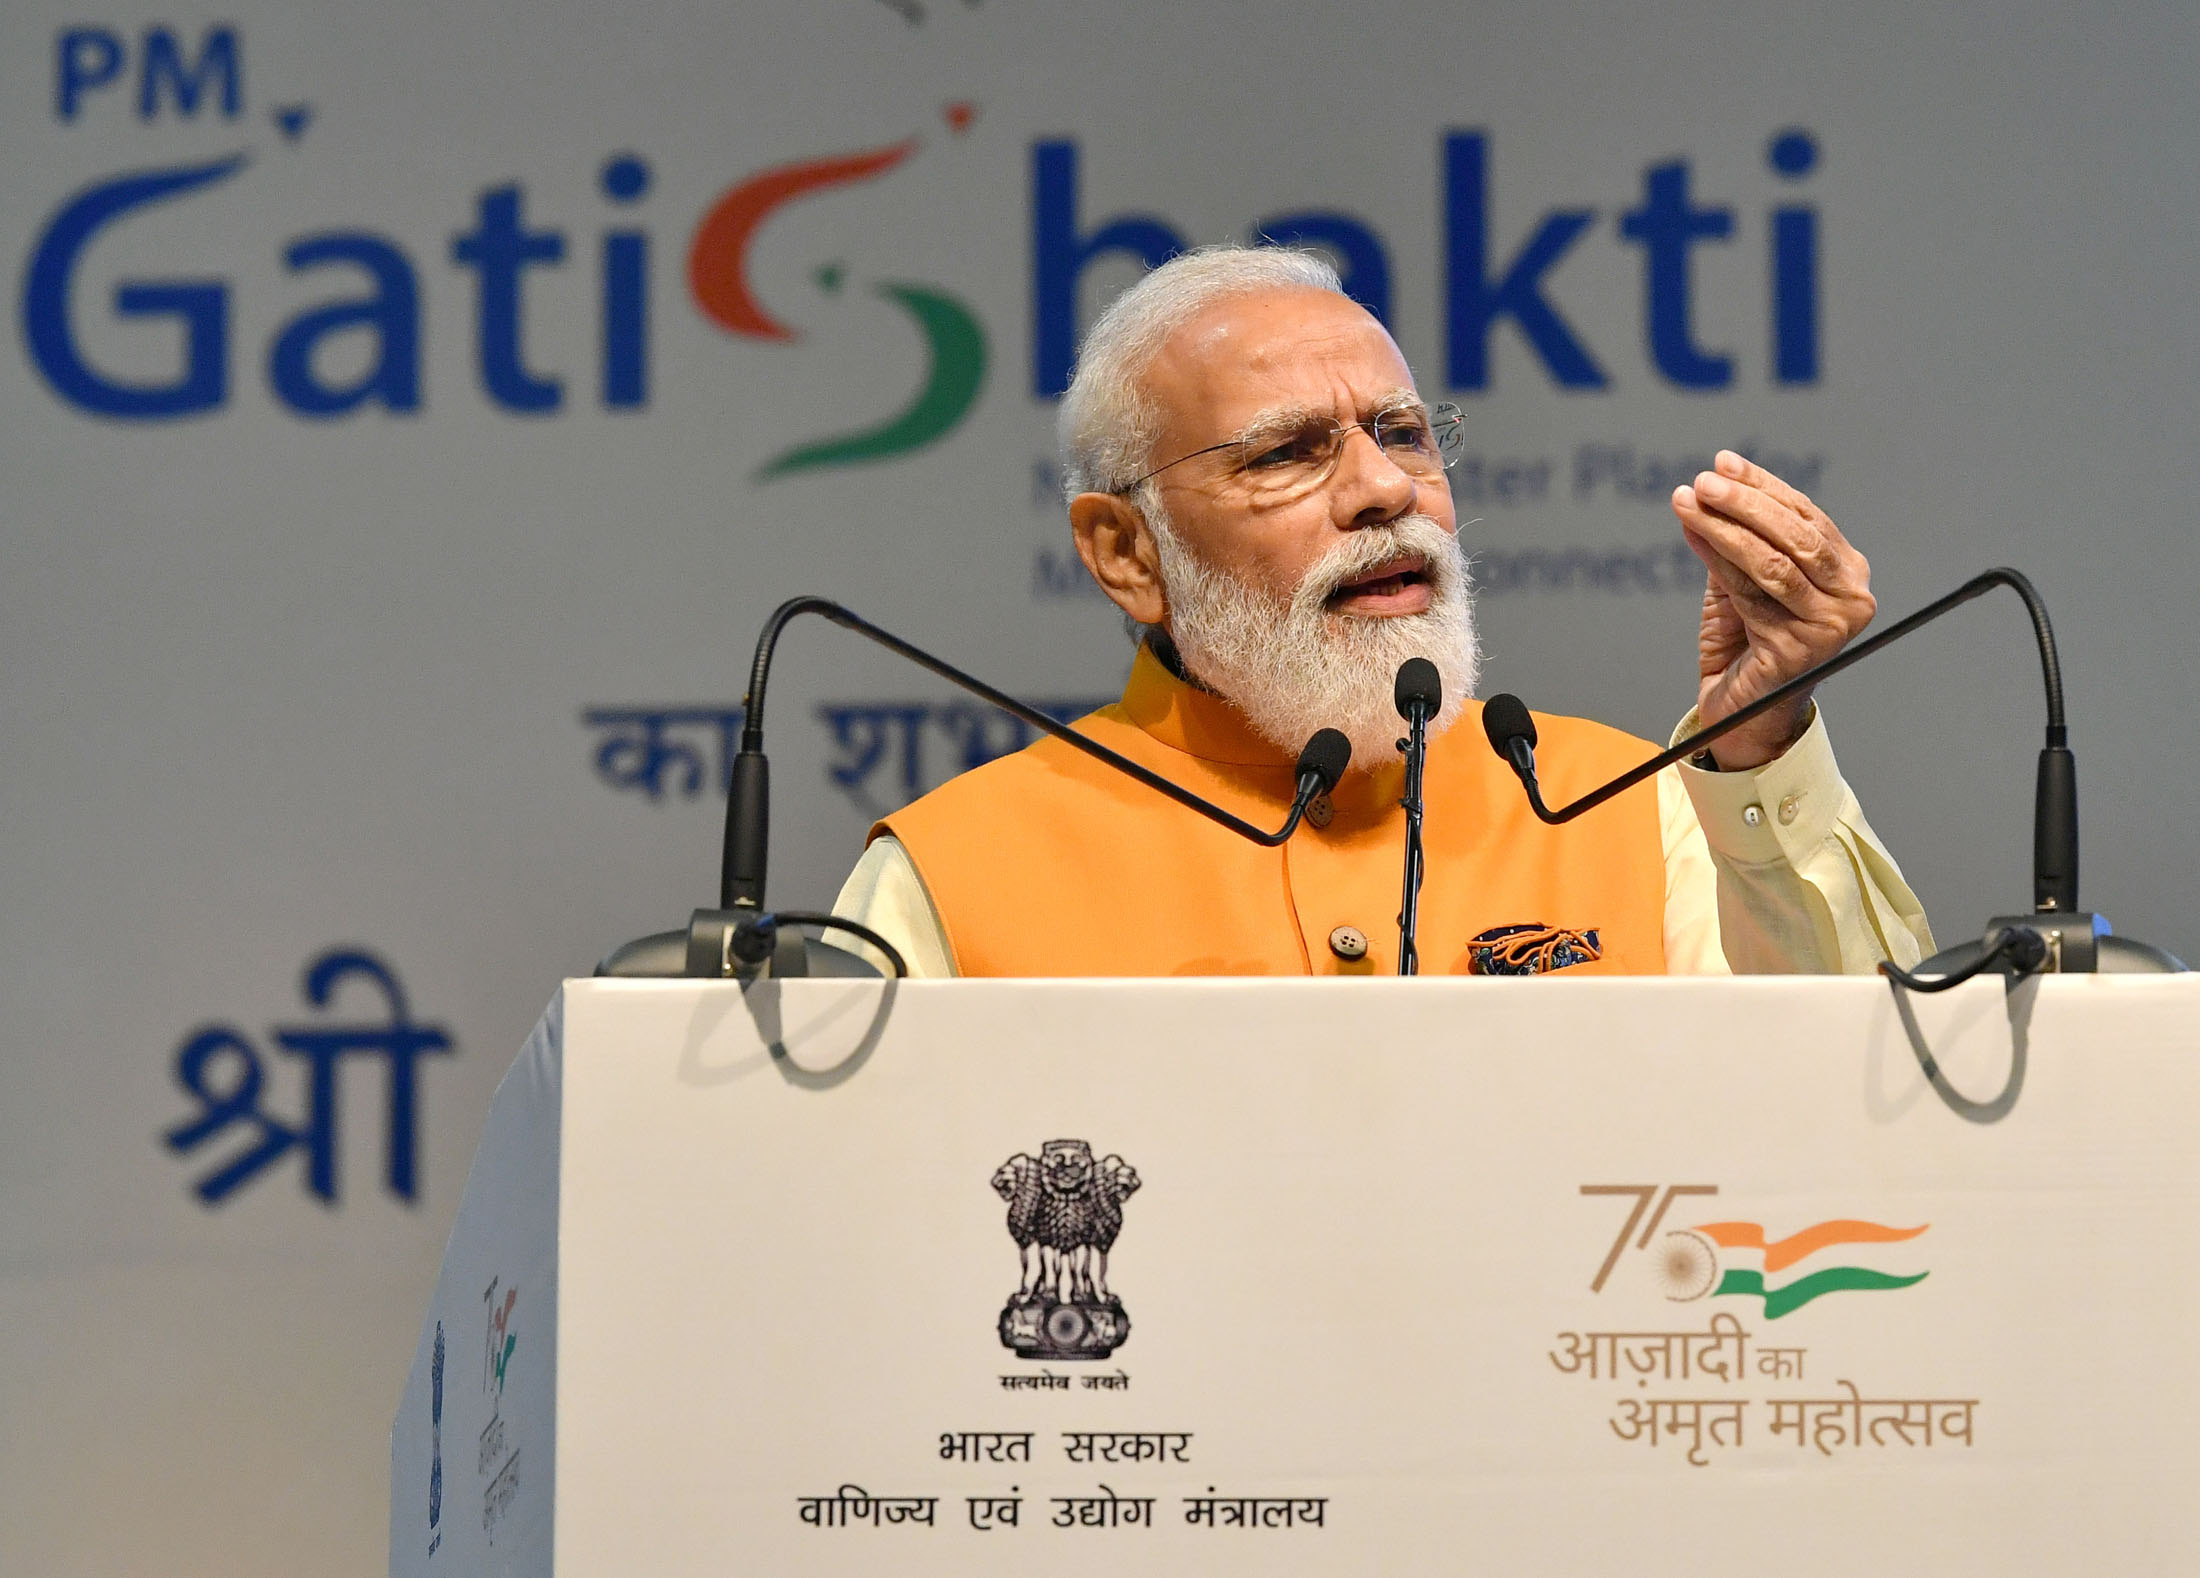 The Prime Minister, Shri Narendra Modi at the launch of the PM Gati Shakti - National Master Plan, at Pragati Maidan, in New Delhi on October 12, 2021. The Union Minister for Commerce & Industry, Consumer Affairs, Food & Public Distribution and Textiles, Shri Piyush Goyal and the Minister of State for Commerce and Industry, Smt. Anupriya Patel are also seen.